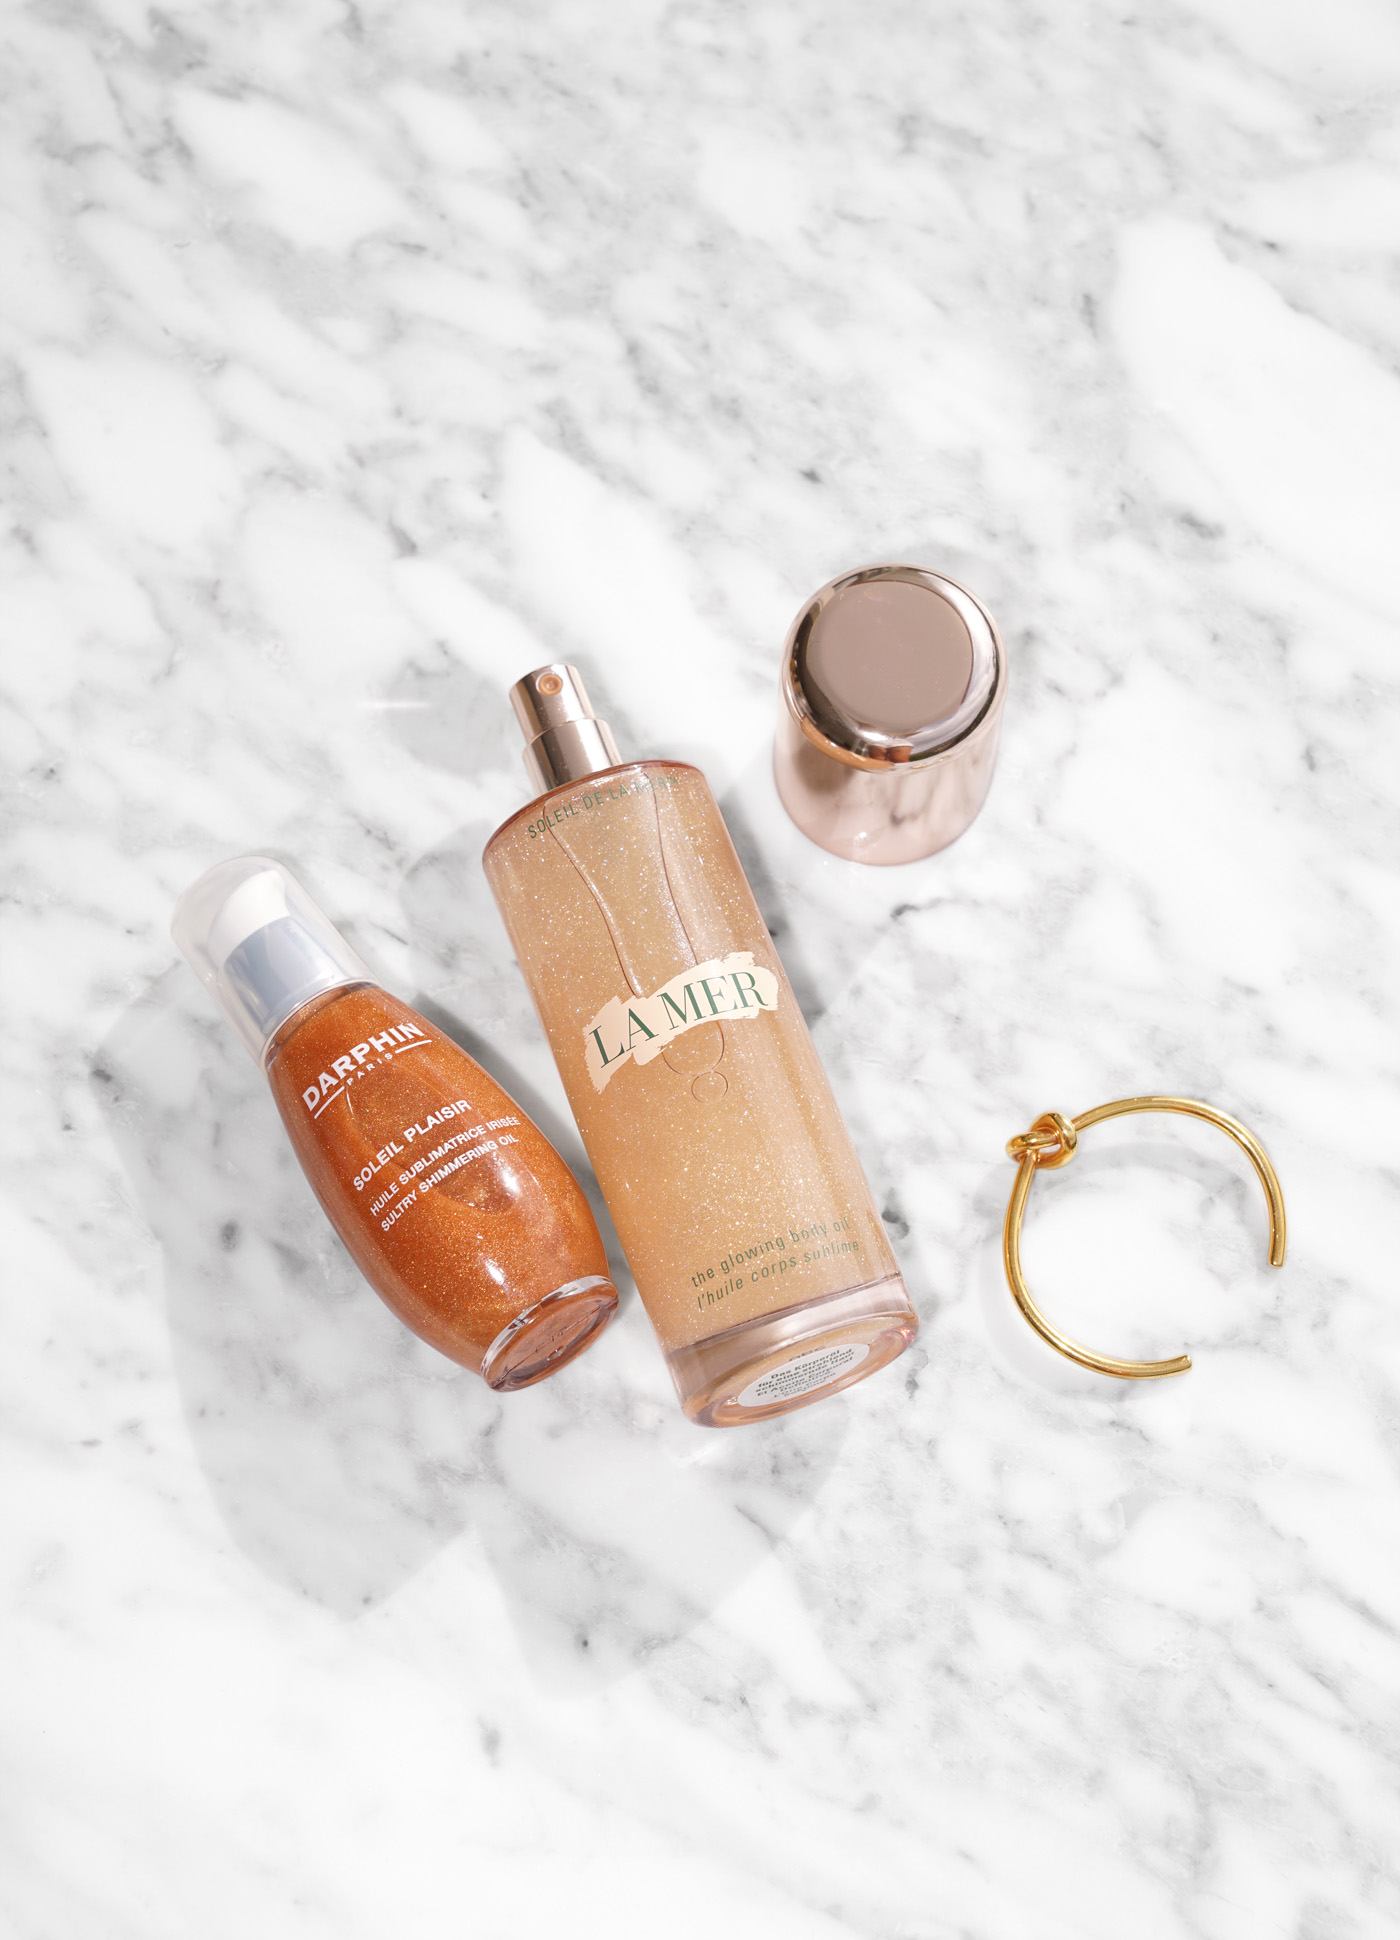 Darphin Soleil Plaisir and La Mer Glowing Body Oil   The Beauty Look Book